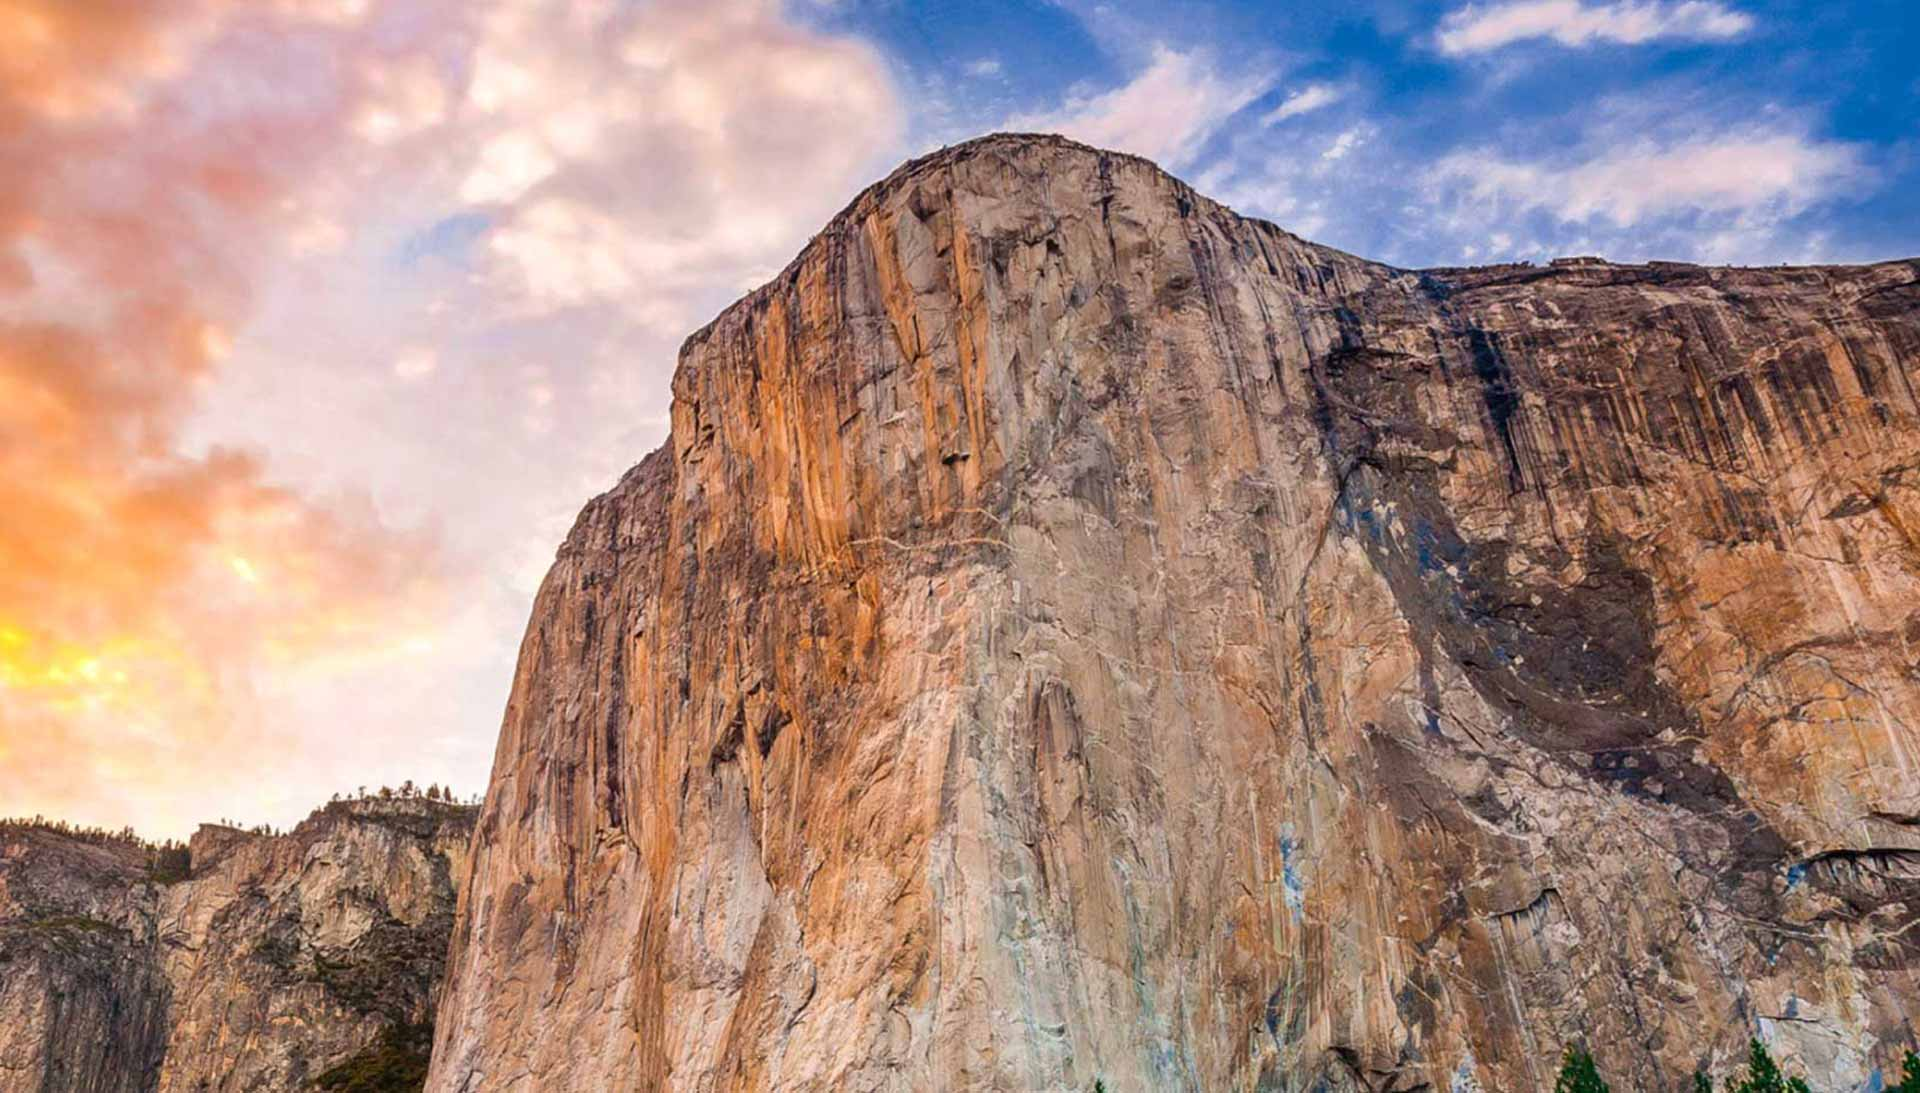 The Nose - El Capitan